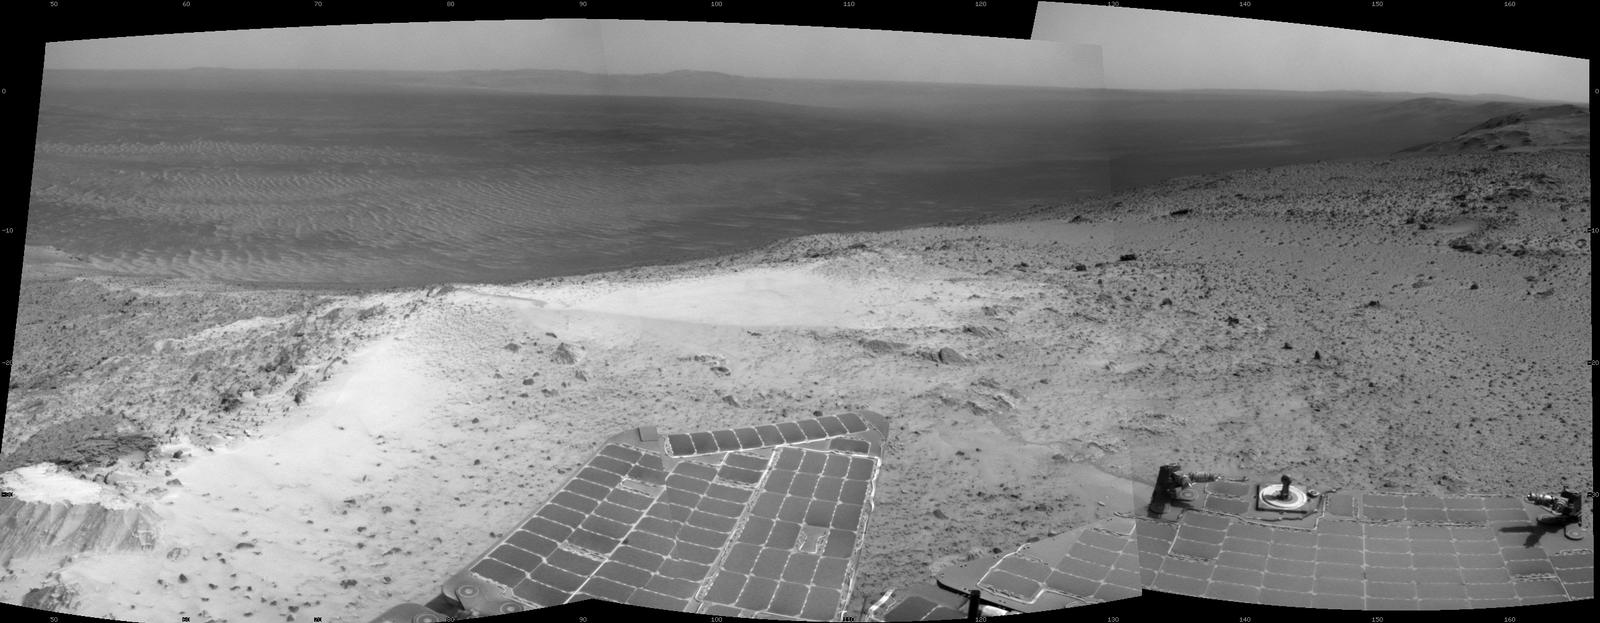 "NASA's Mars Exploration Rover Opportunity recorded this view just after reaching the summit of ""Cape Tribulation,"" on the western rim of Endeavour Crater, on Jan. 6, 2015, the 3,894th Martian day, or sol, of the rover's work on Mars."